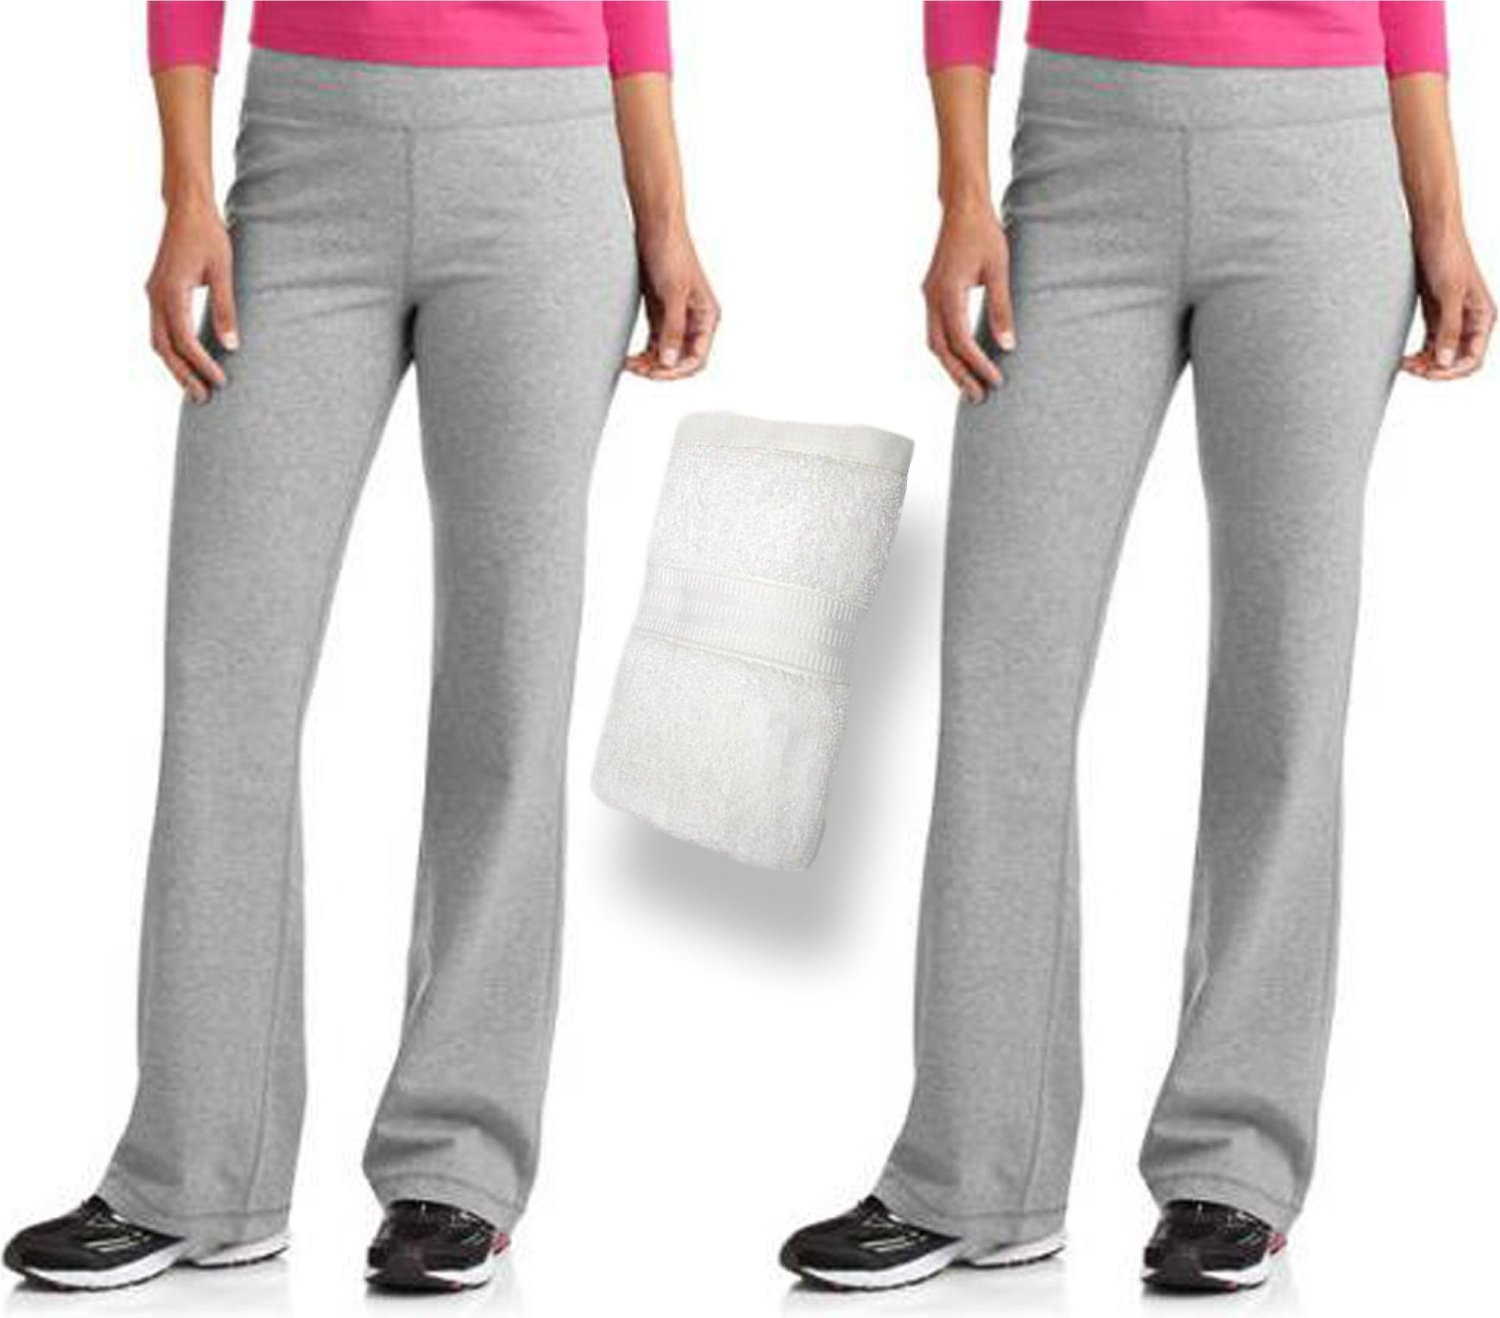 50e71fa0195 Get Quotations · Danskin Now Women s Dri More Bootcut Pants 2 Pack and  Exclusive Sports Towel